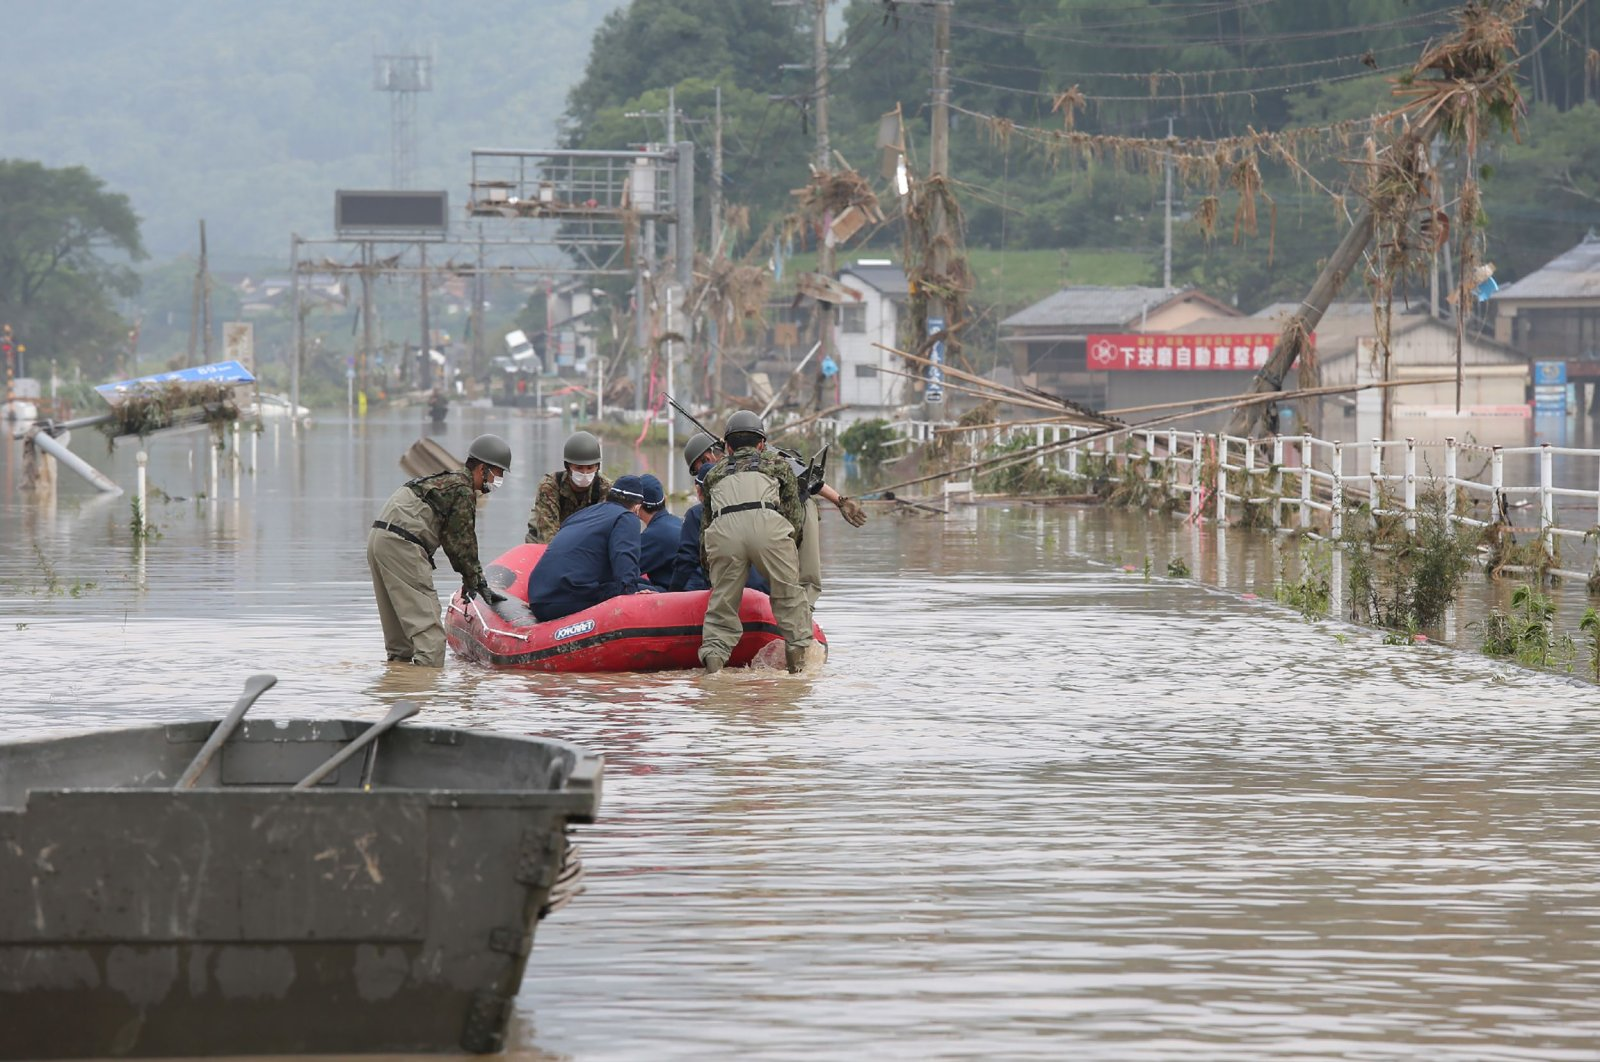 Japan Self-Defense Forces and police officers handle an inflatable boat to join rescue operations at a nursing home following heavy rain in Kuma village, Kumamoto prefecture, July 5, 2020. (AFP Photo)